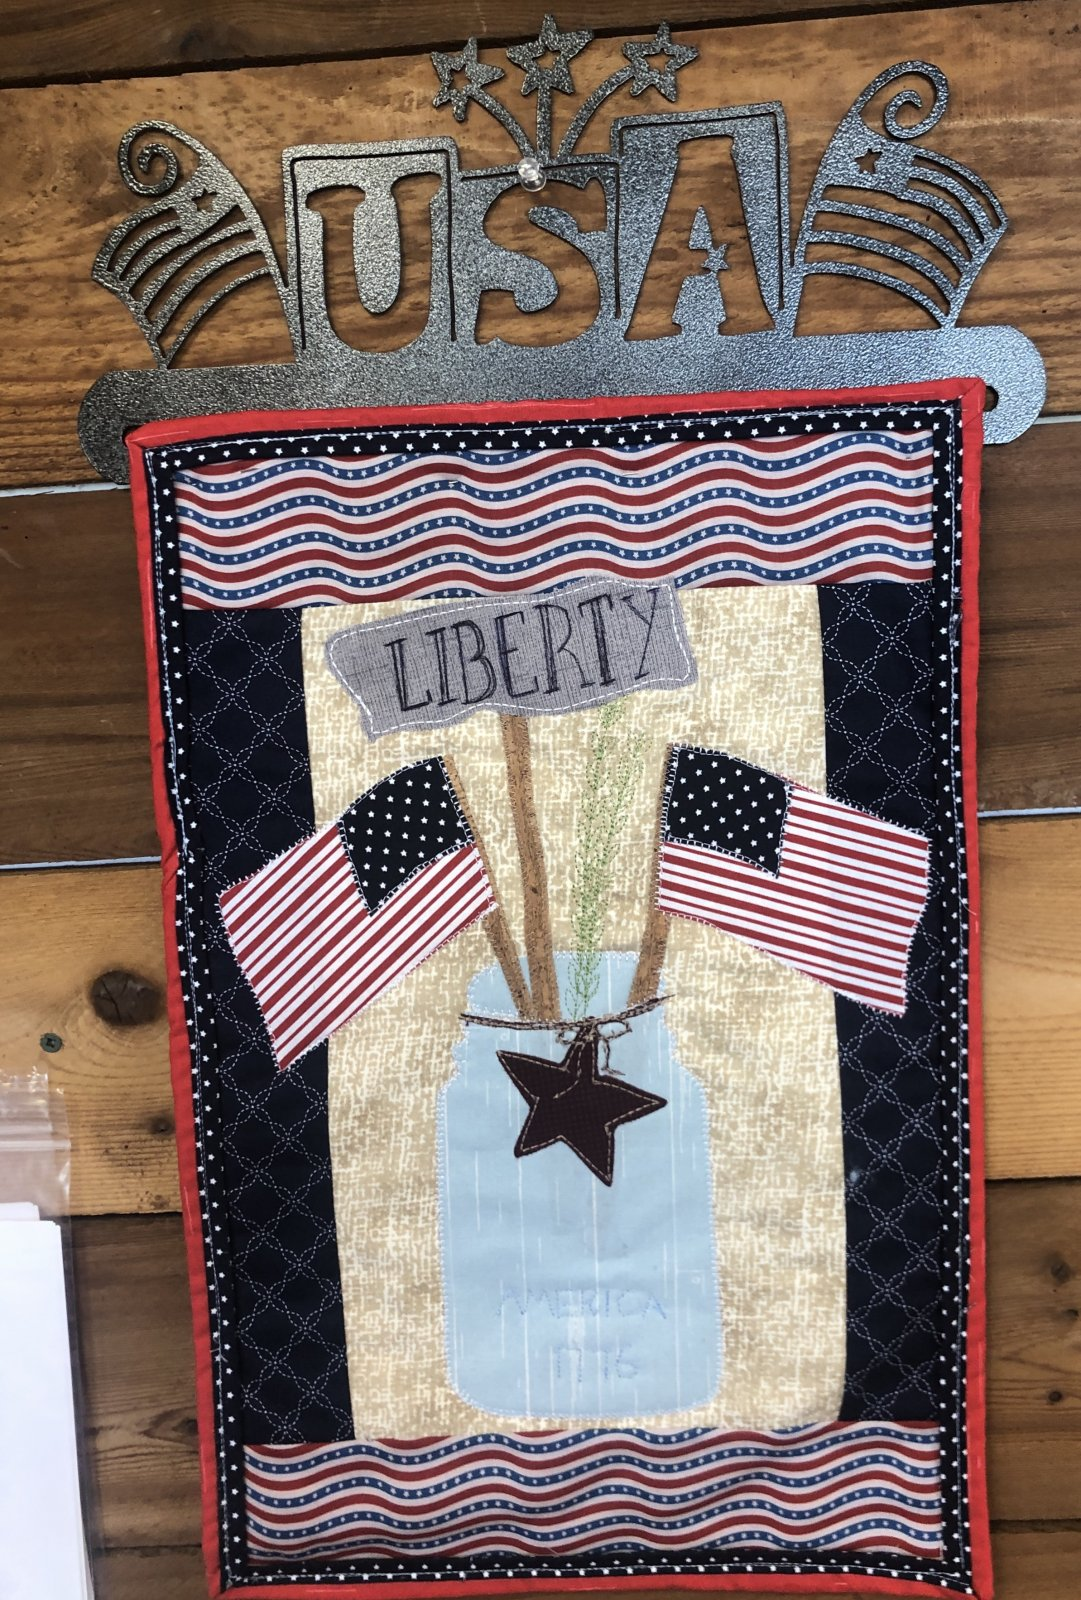 Patch Abilities Liberty Ball Jar Pattern with USA Hanger